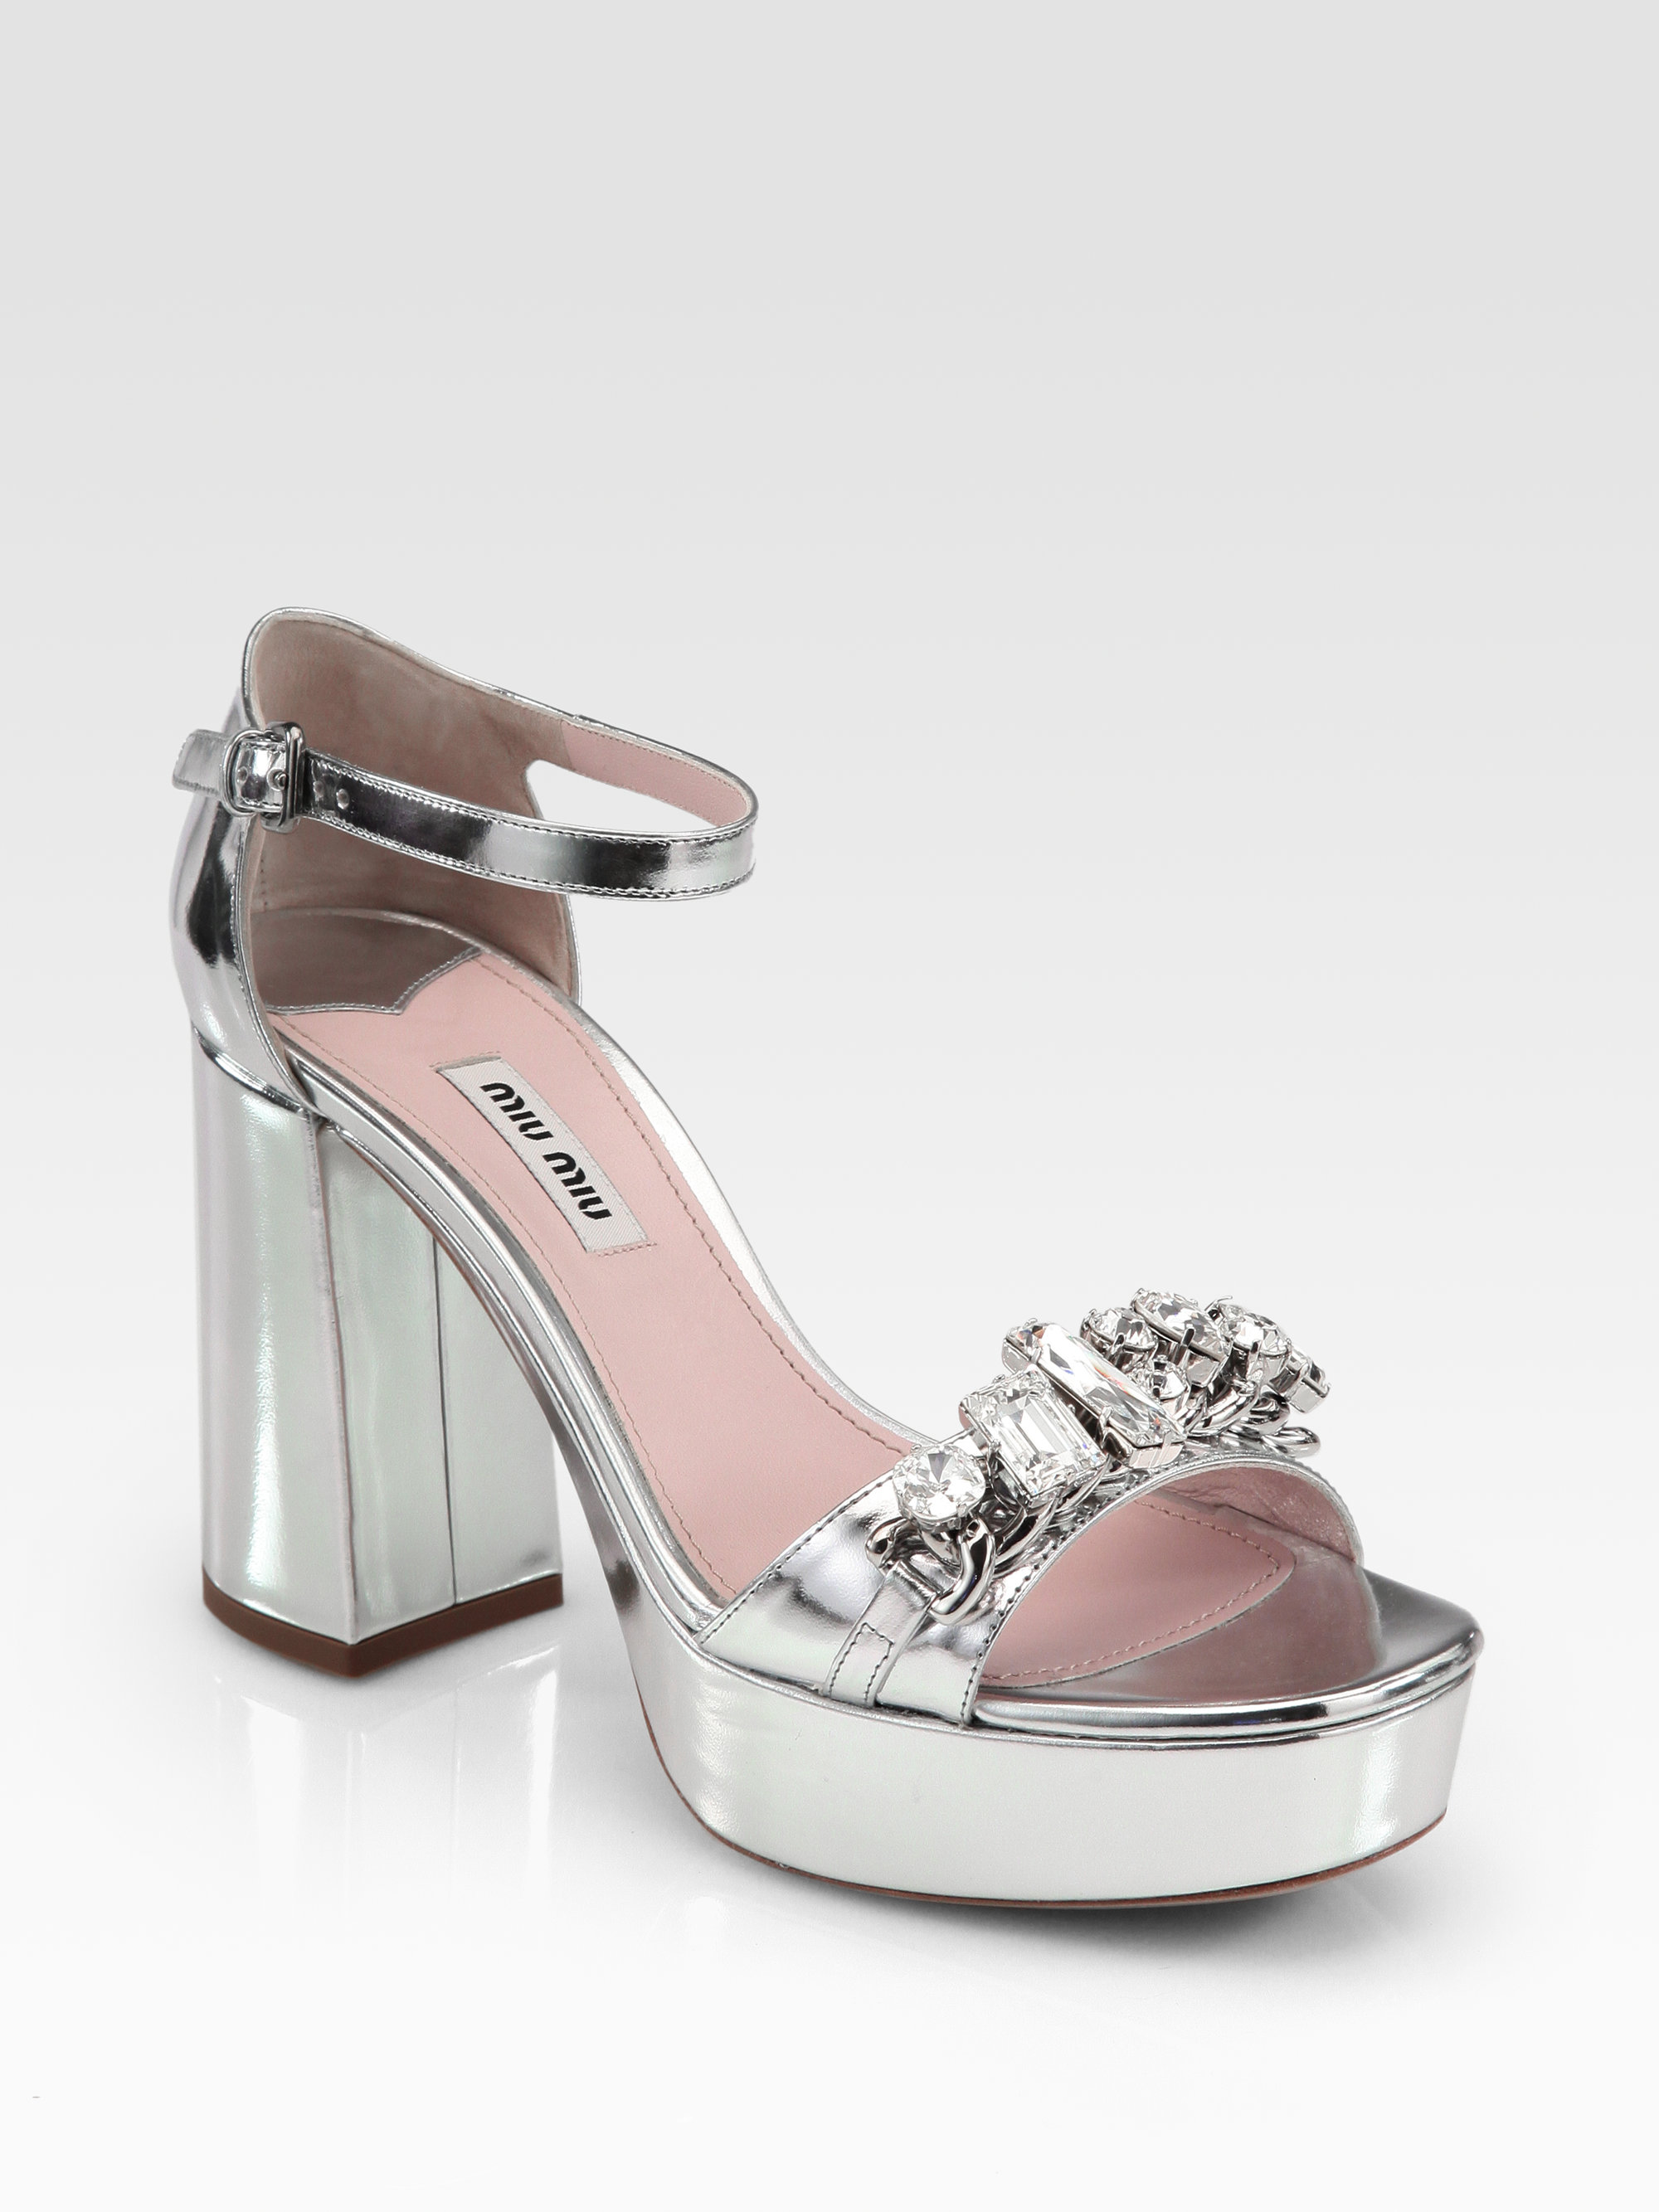 86216a4e192 Lyst - Miu Miu Metallic Leather Jeweled Platform Sandals in Gray